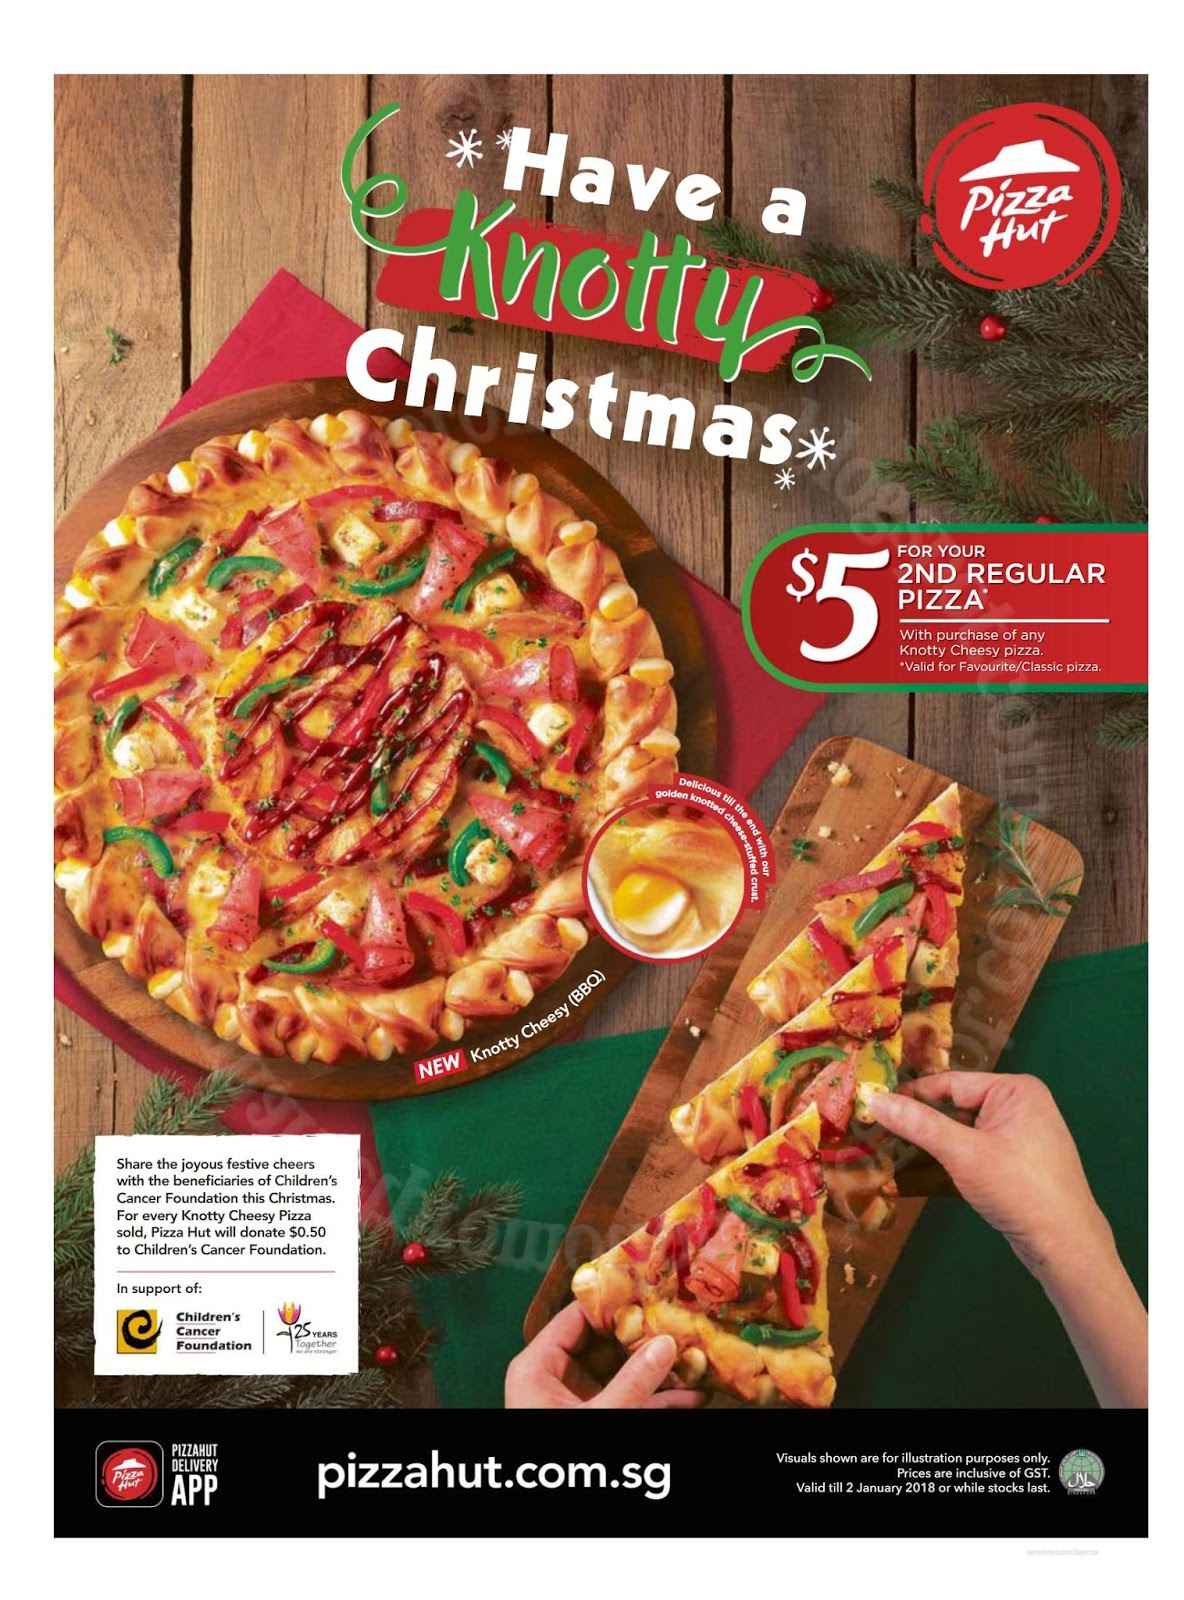 Is Pizza Hut Open On Christmas.Pizza Hut Knotty Christmas Promotion 28 November 2017